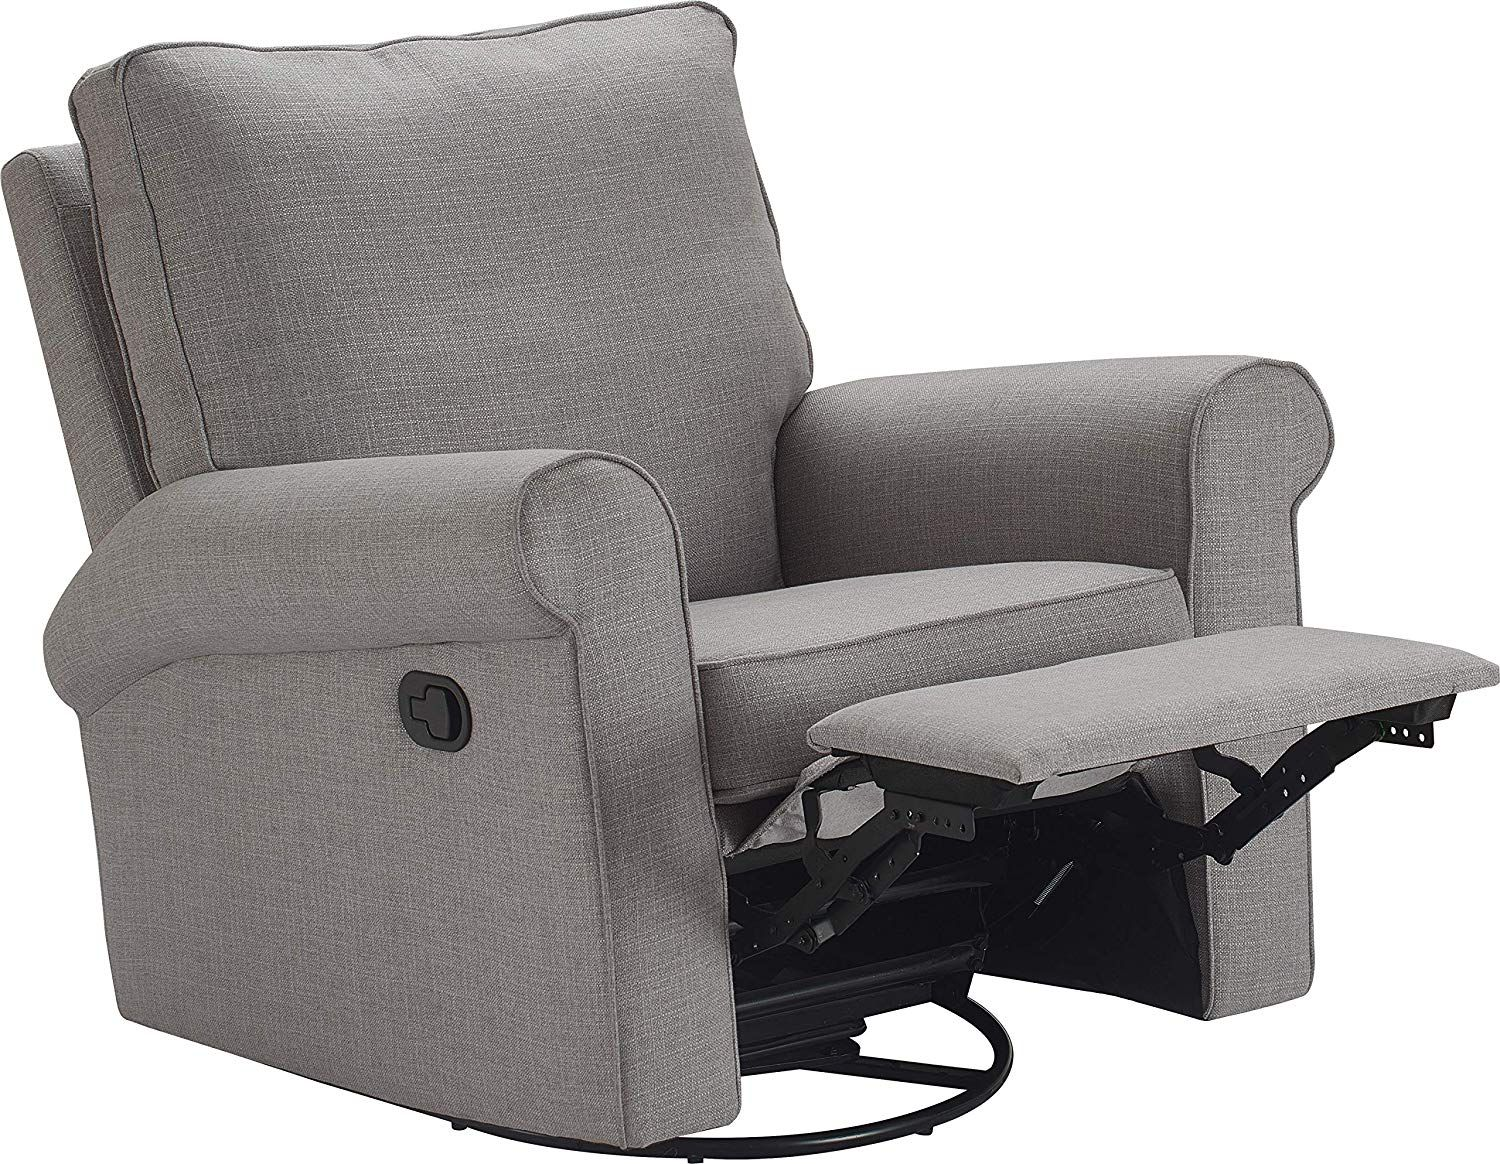 Truly Home Uph10159b Hughes Swivel Recliner Gray Swivel Recliner Swivel Recliner Chairs Cheap Leather Chairs #swivel #recliner #chairs #for #living #room